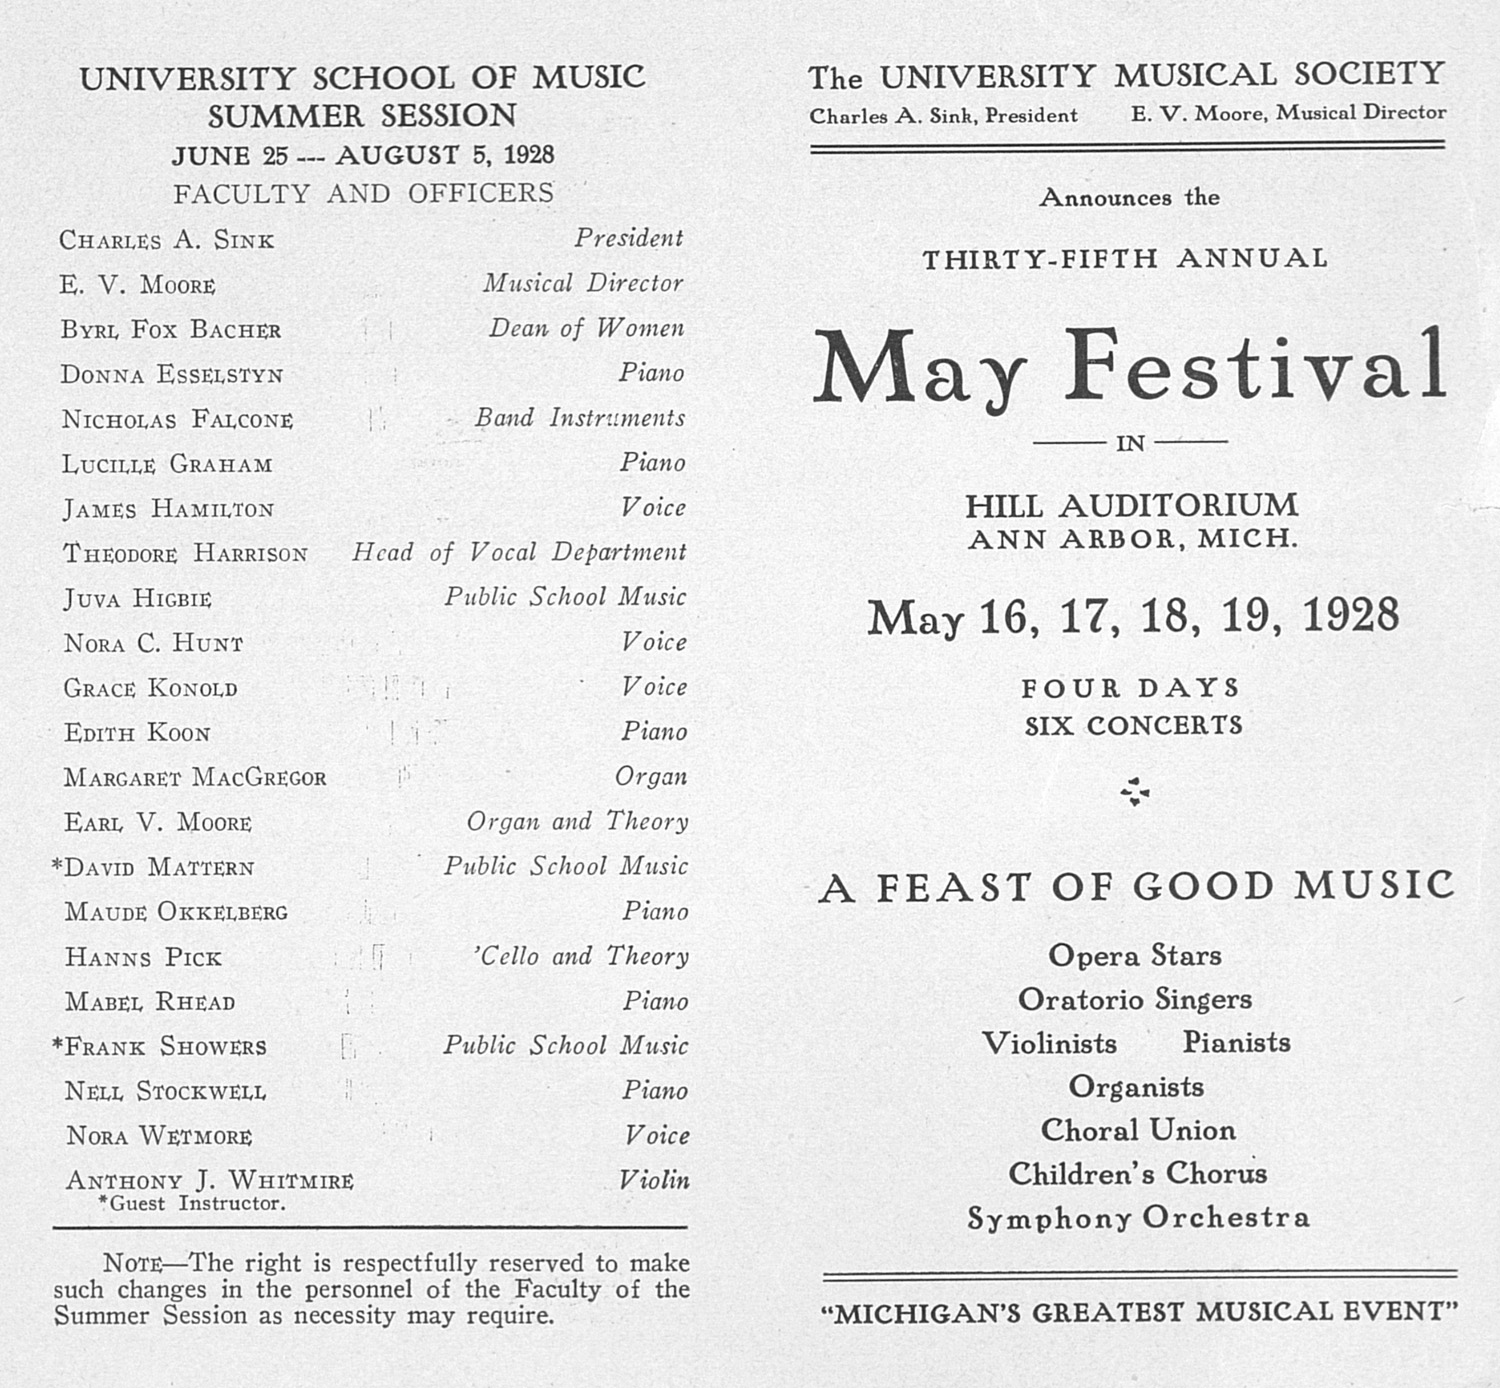 UMS Concert Program, May 16, 17, 18, 19, 1928: May Festival --  image